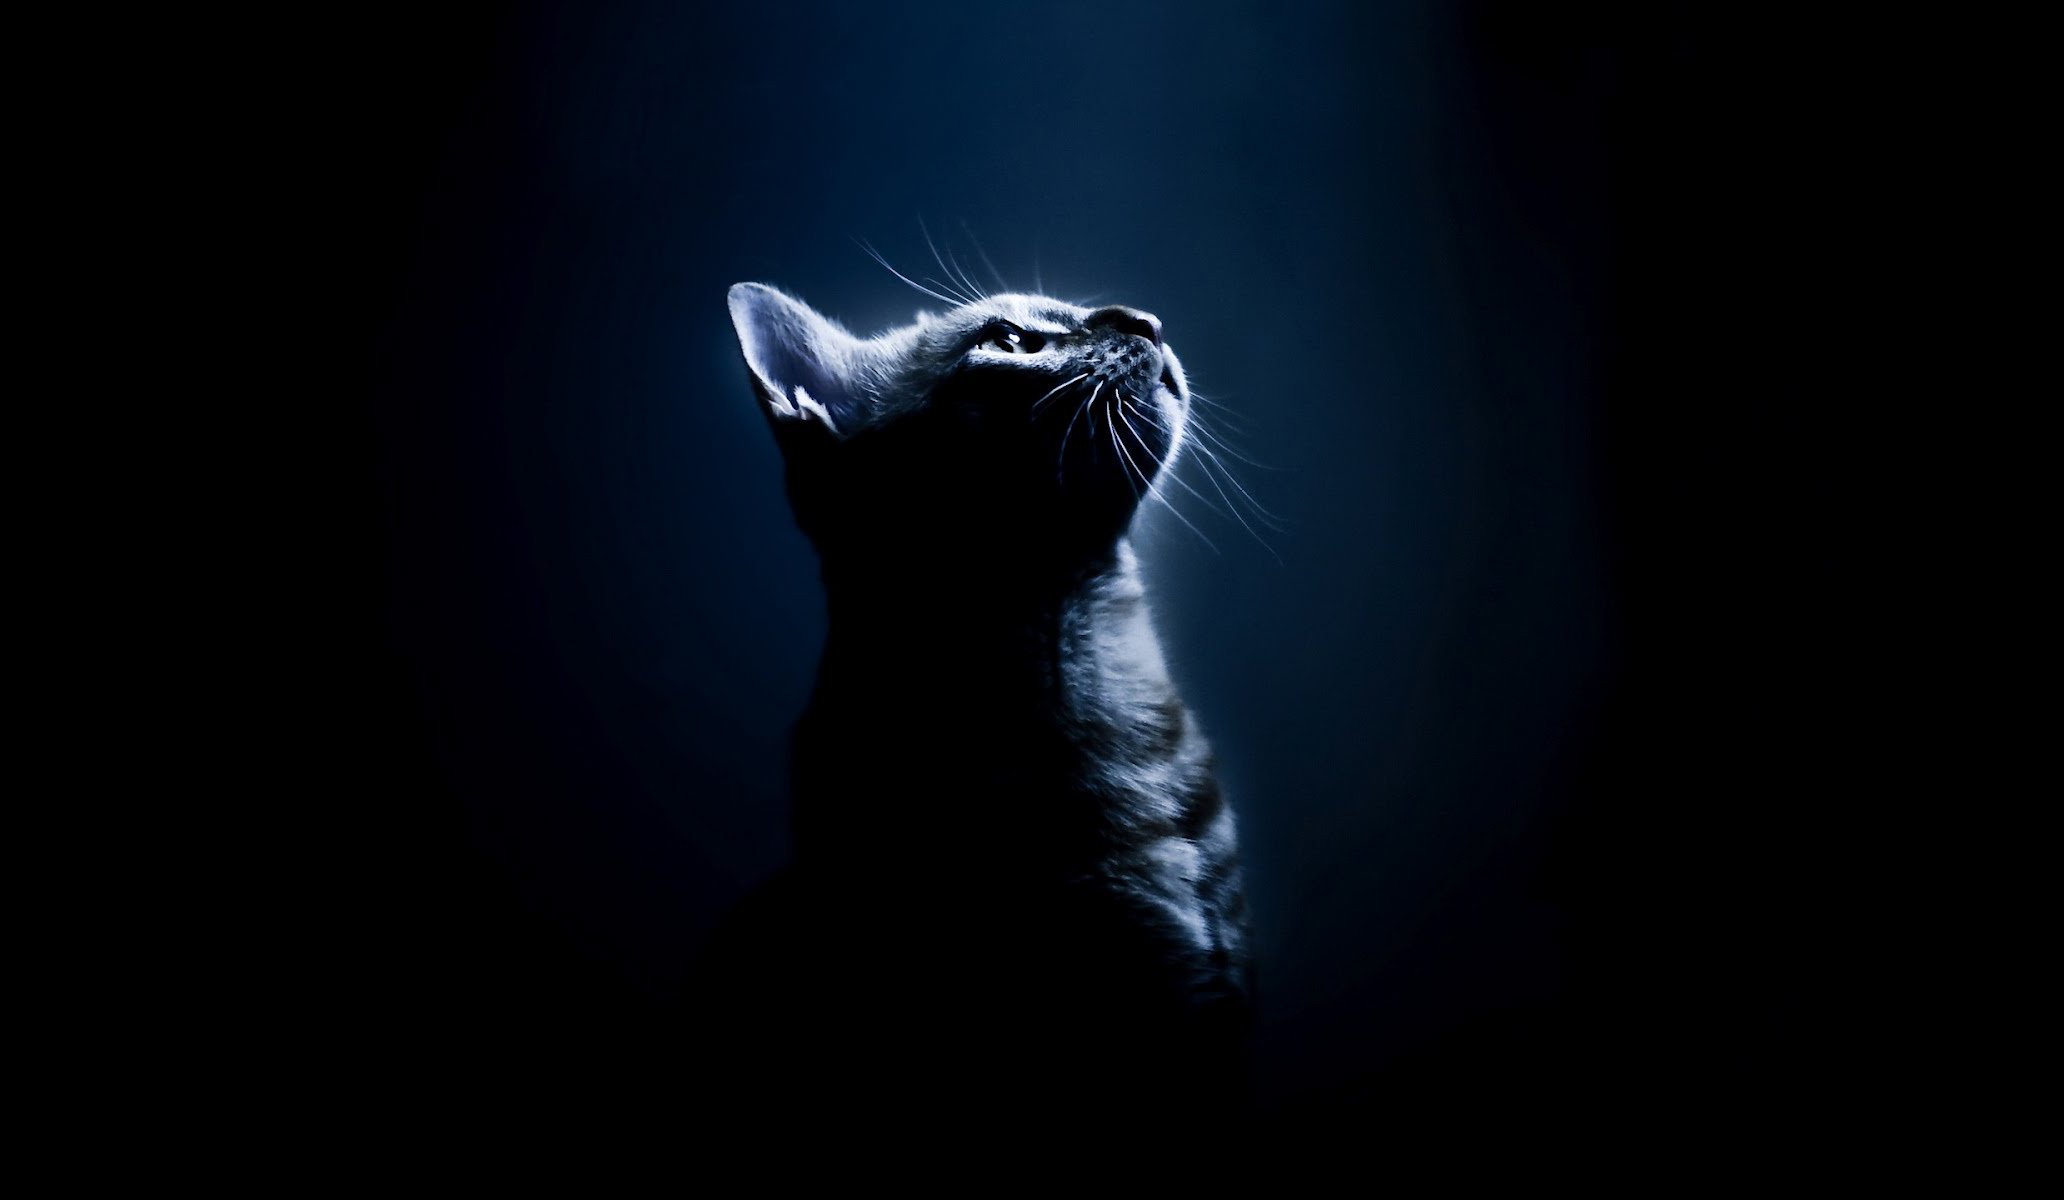 warrior cat wallpapers backgrounds - wallpapersafari